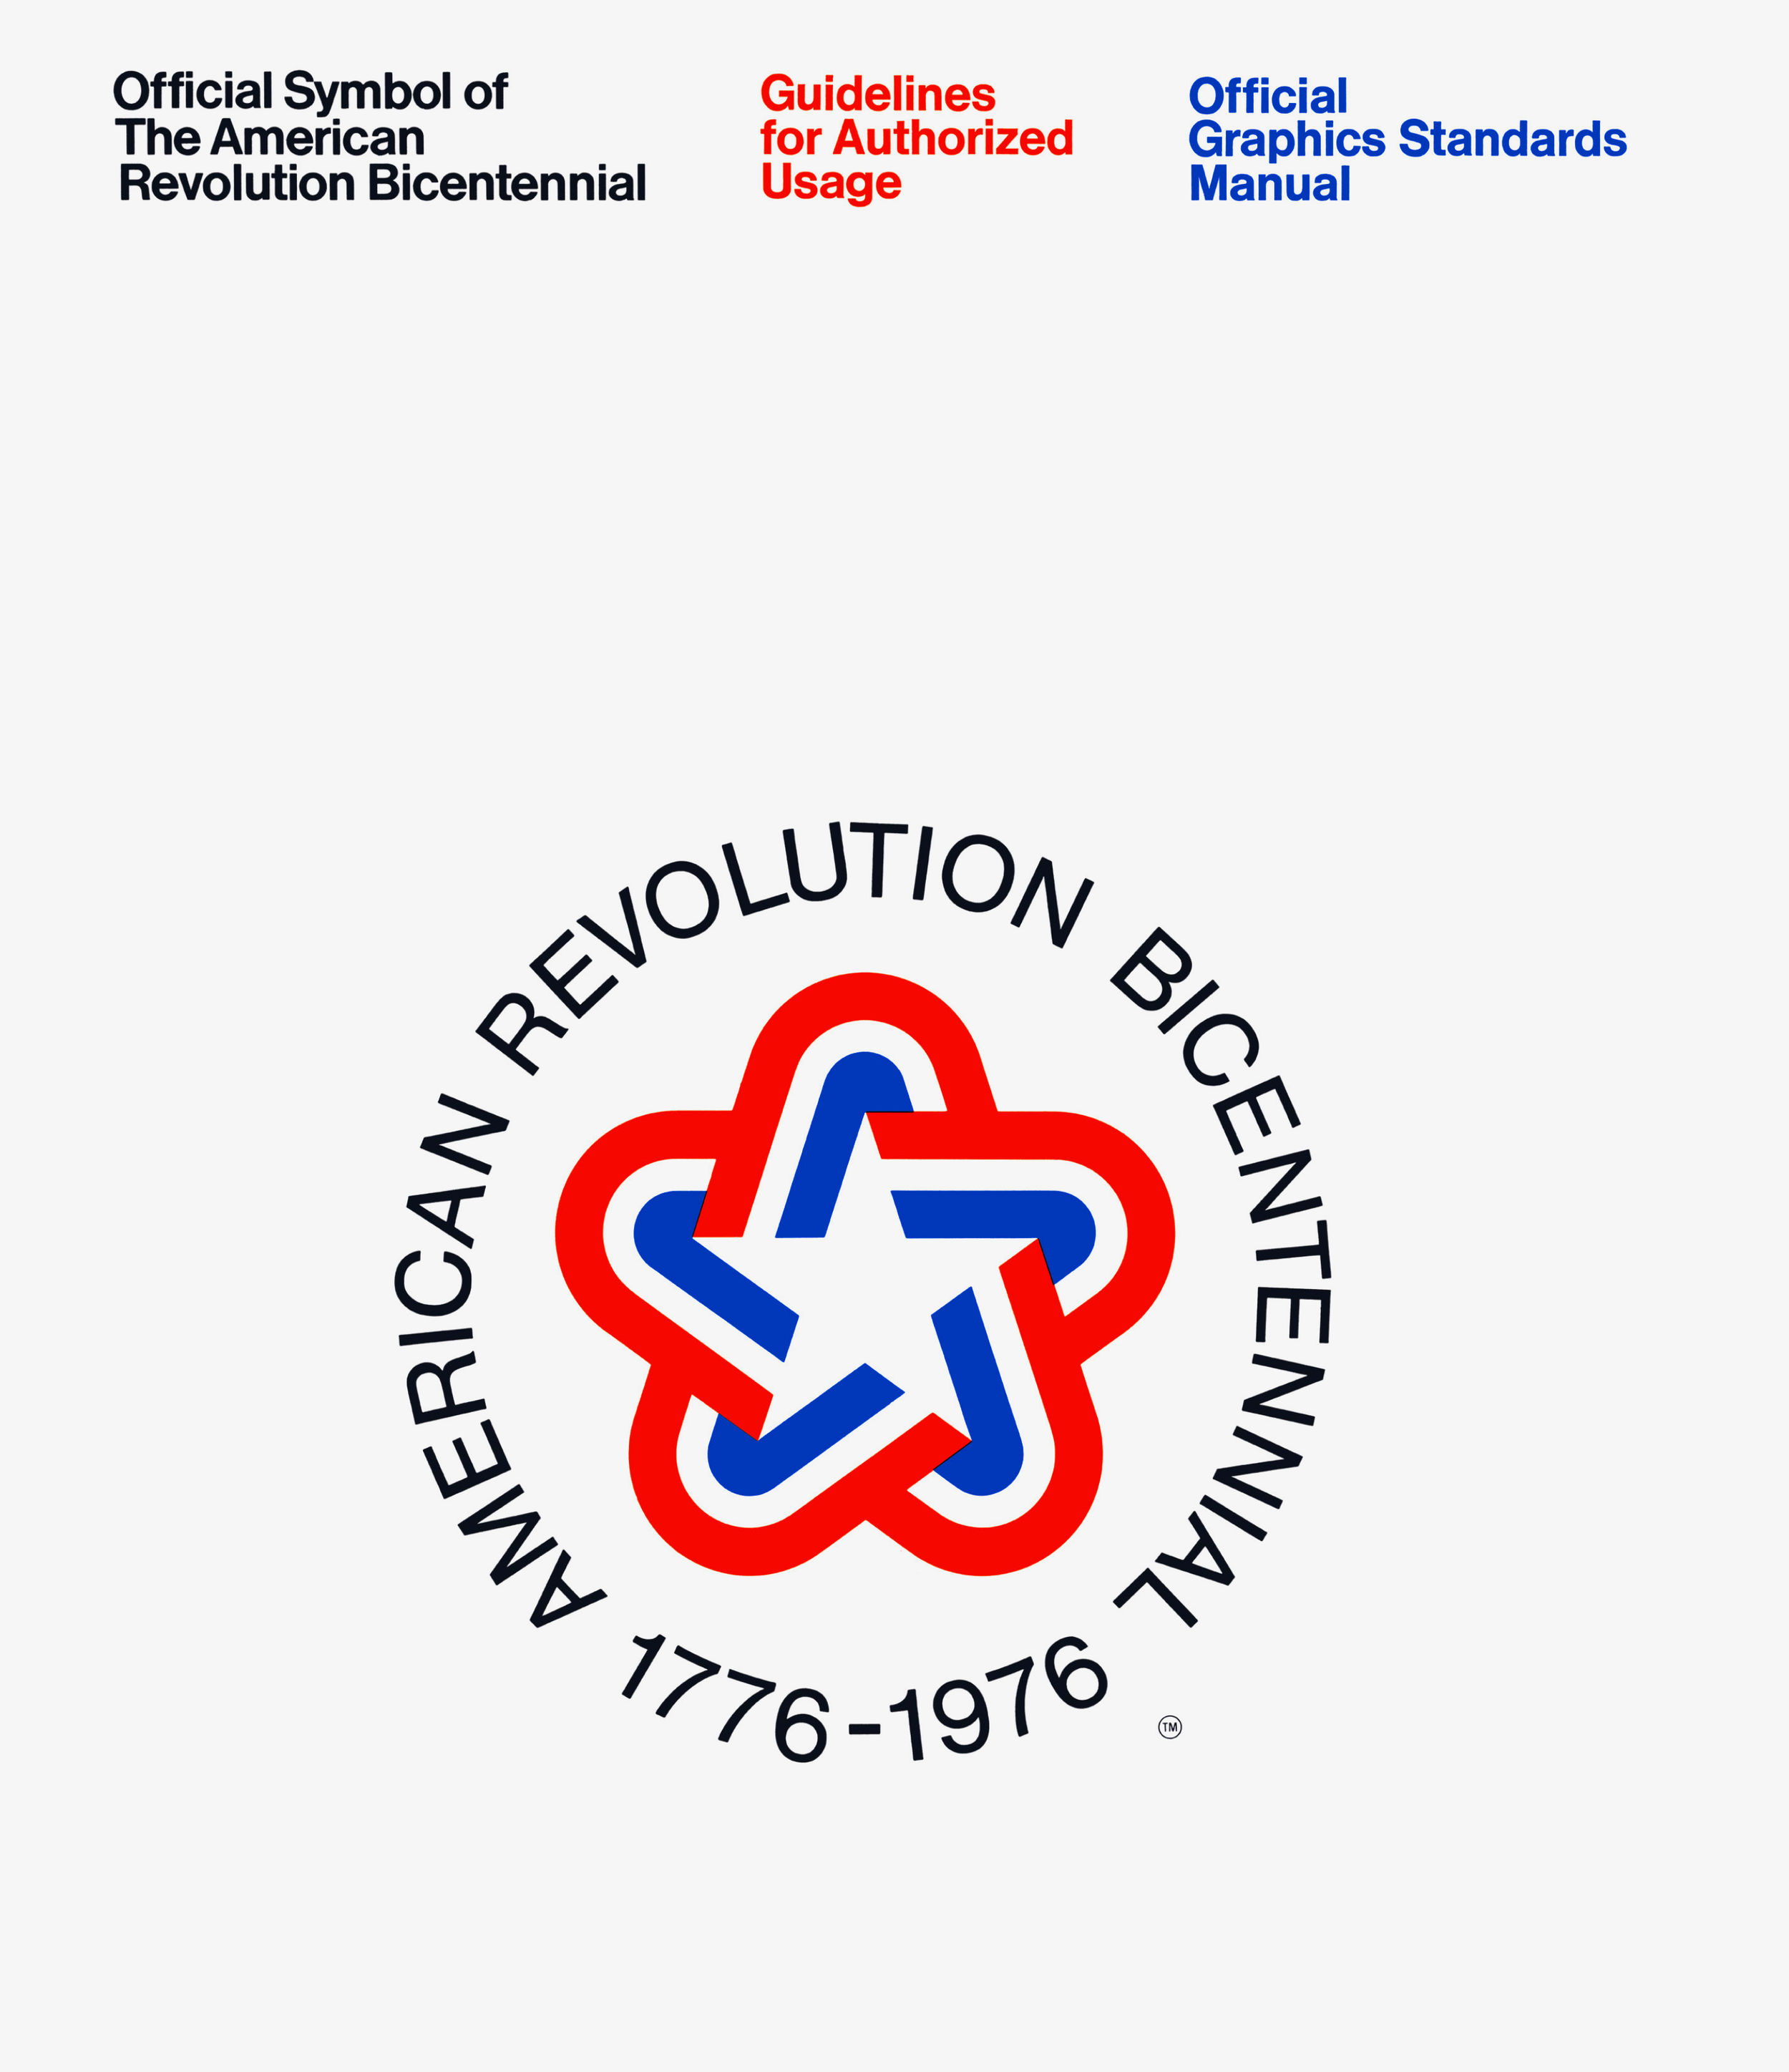 American Revolution Bicentennial Standards Manual Limited Edition